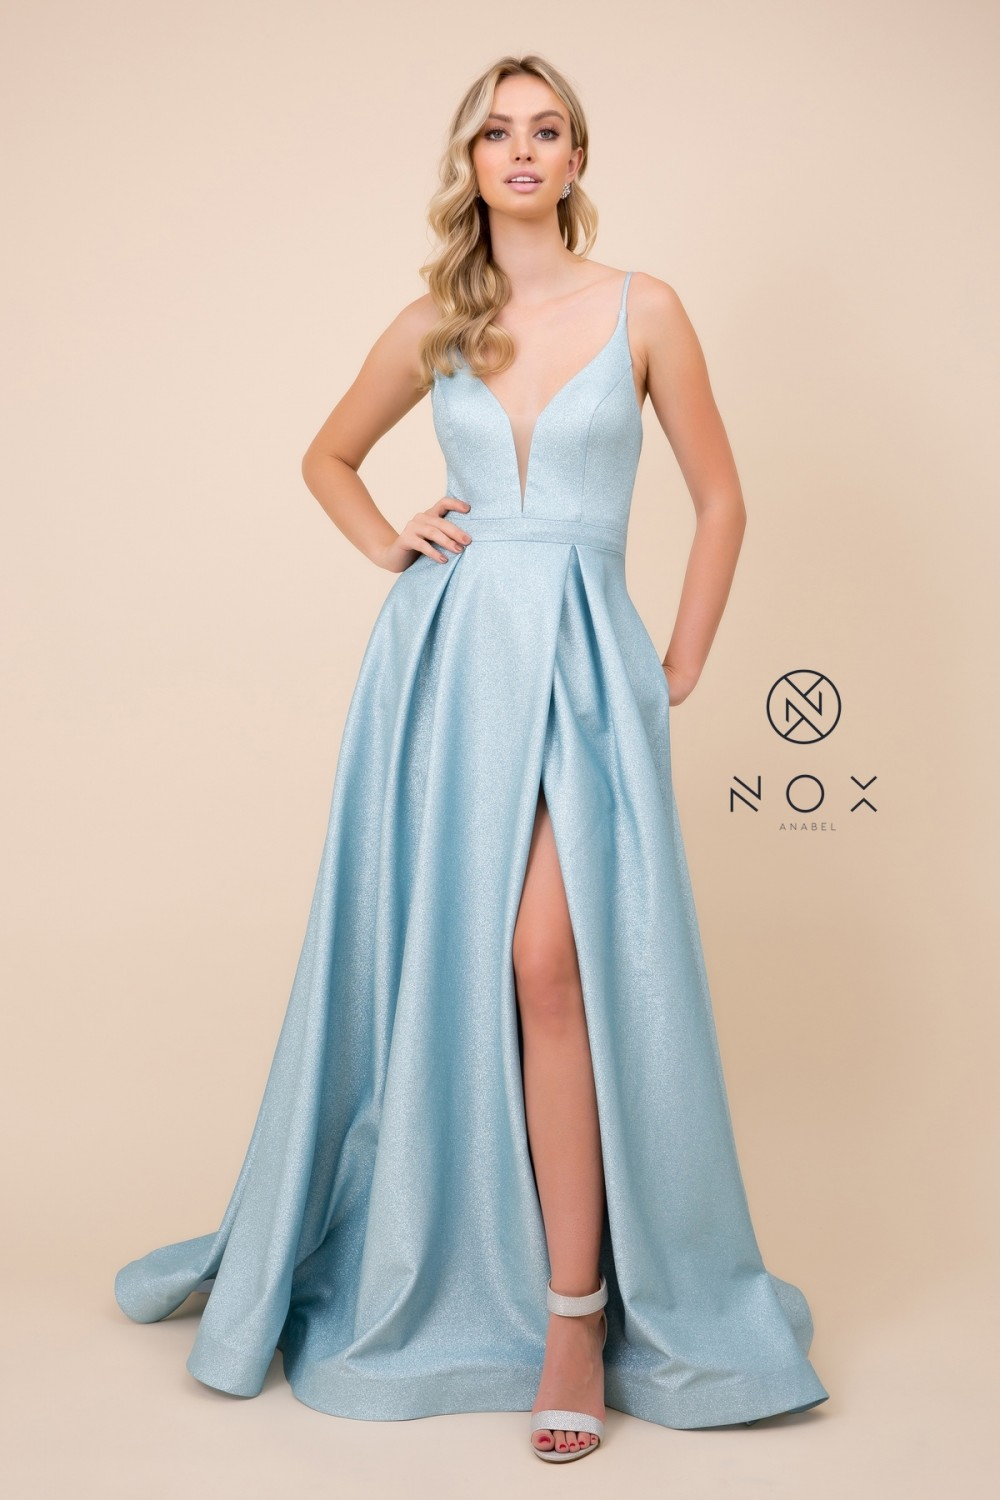 N E379 - Metallic A-Line Prom Gown with V-Neck Corset Back & Leg Slit - Diggz Prom